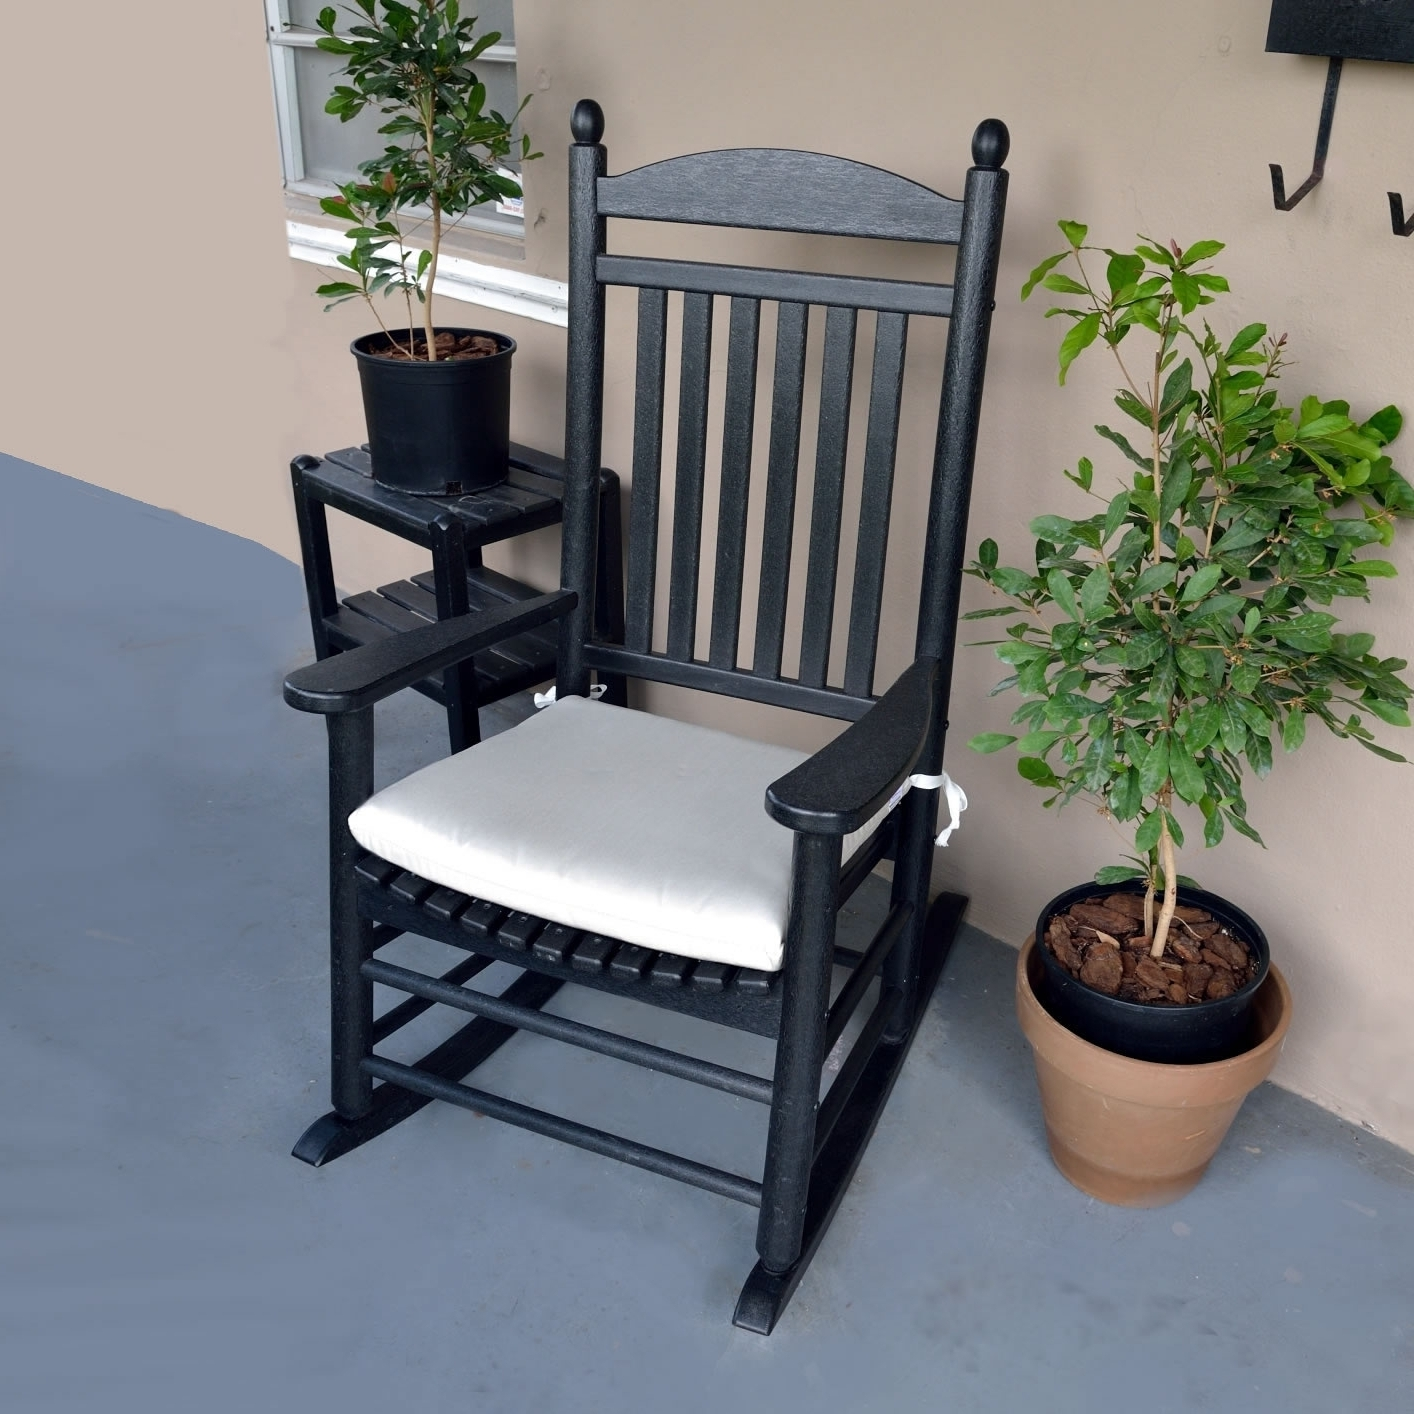 Rocking Chair Cushions For Outdoor Regarding Best And Newest Beautiful Outdoor Rocking Chair Cushions — All Modern Rocking Chairs (View 9 of 15)